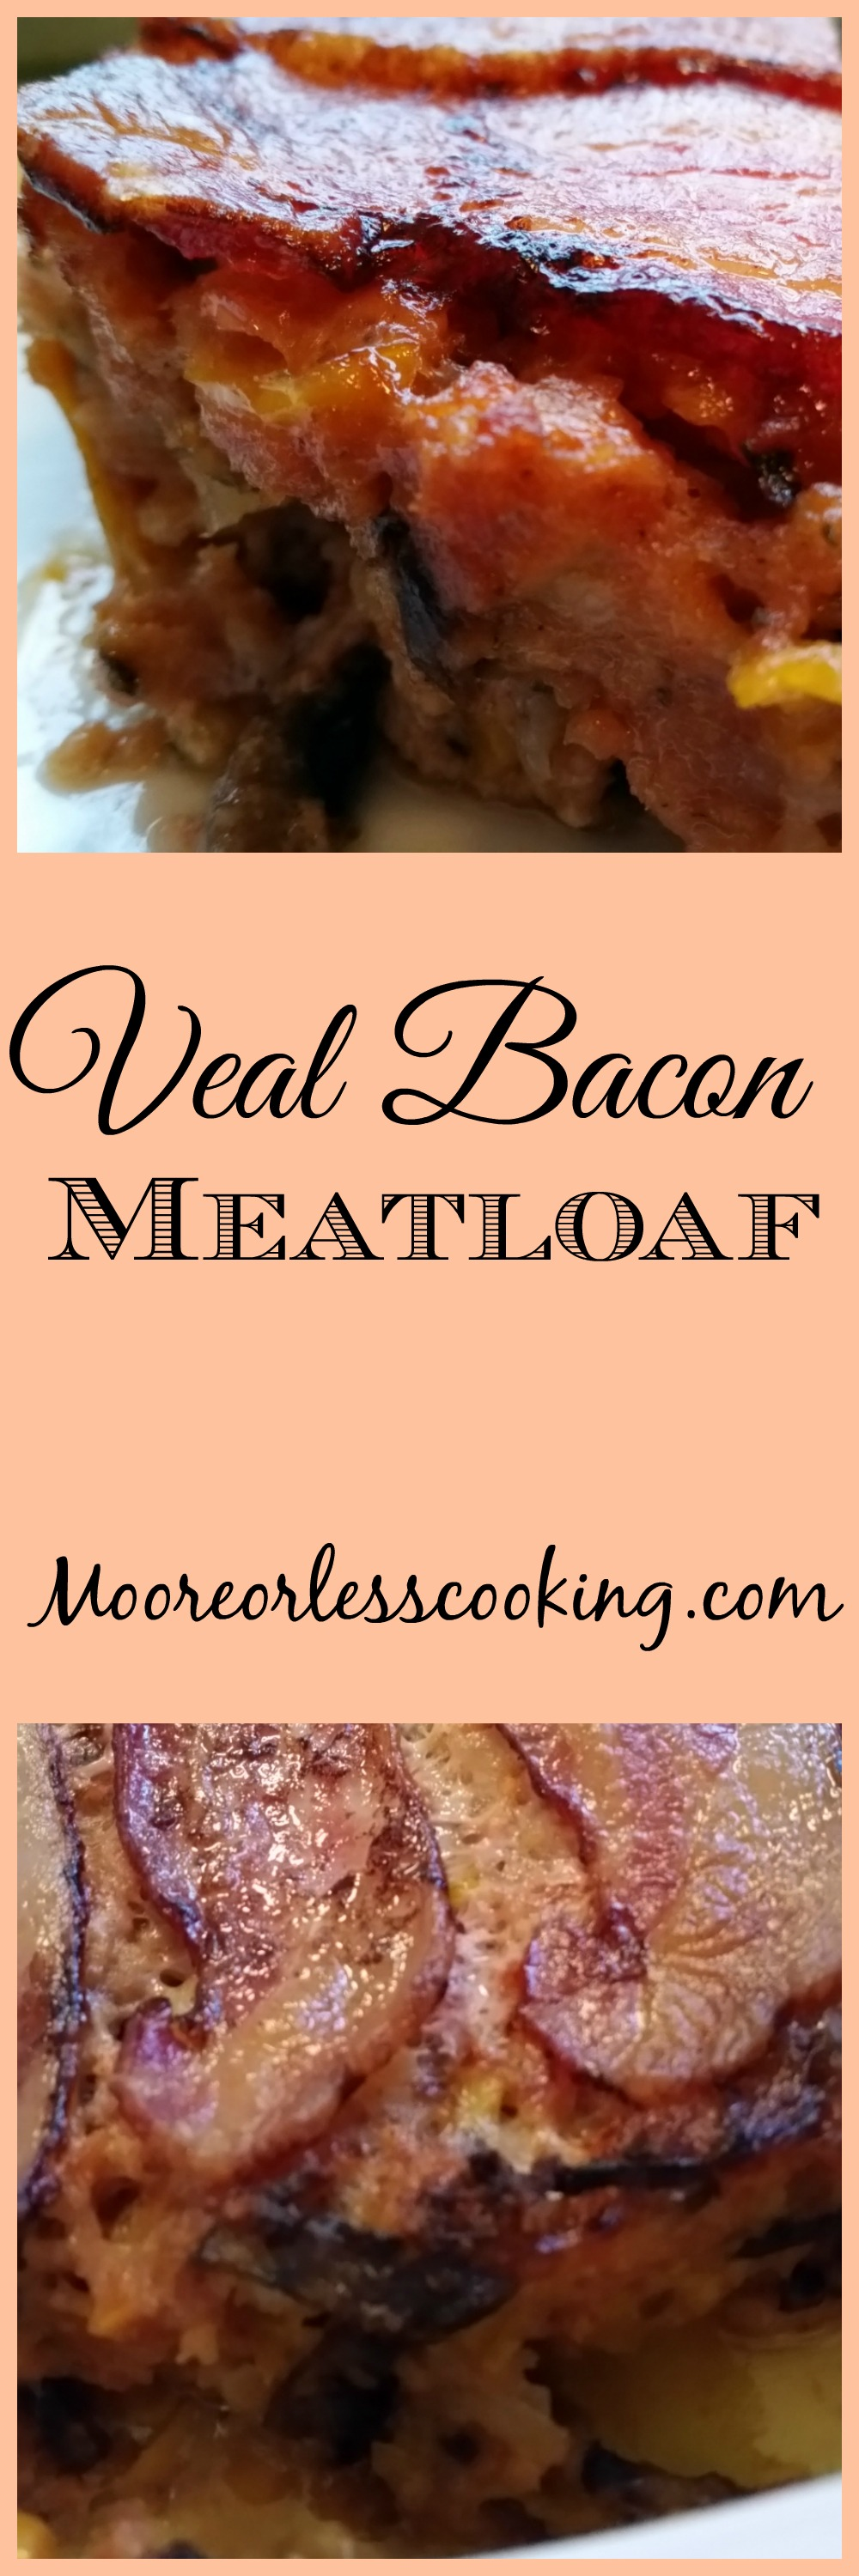 how to cook ground veal